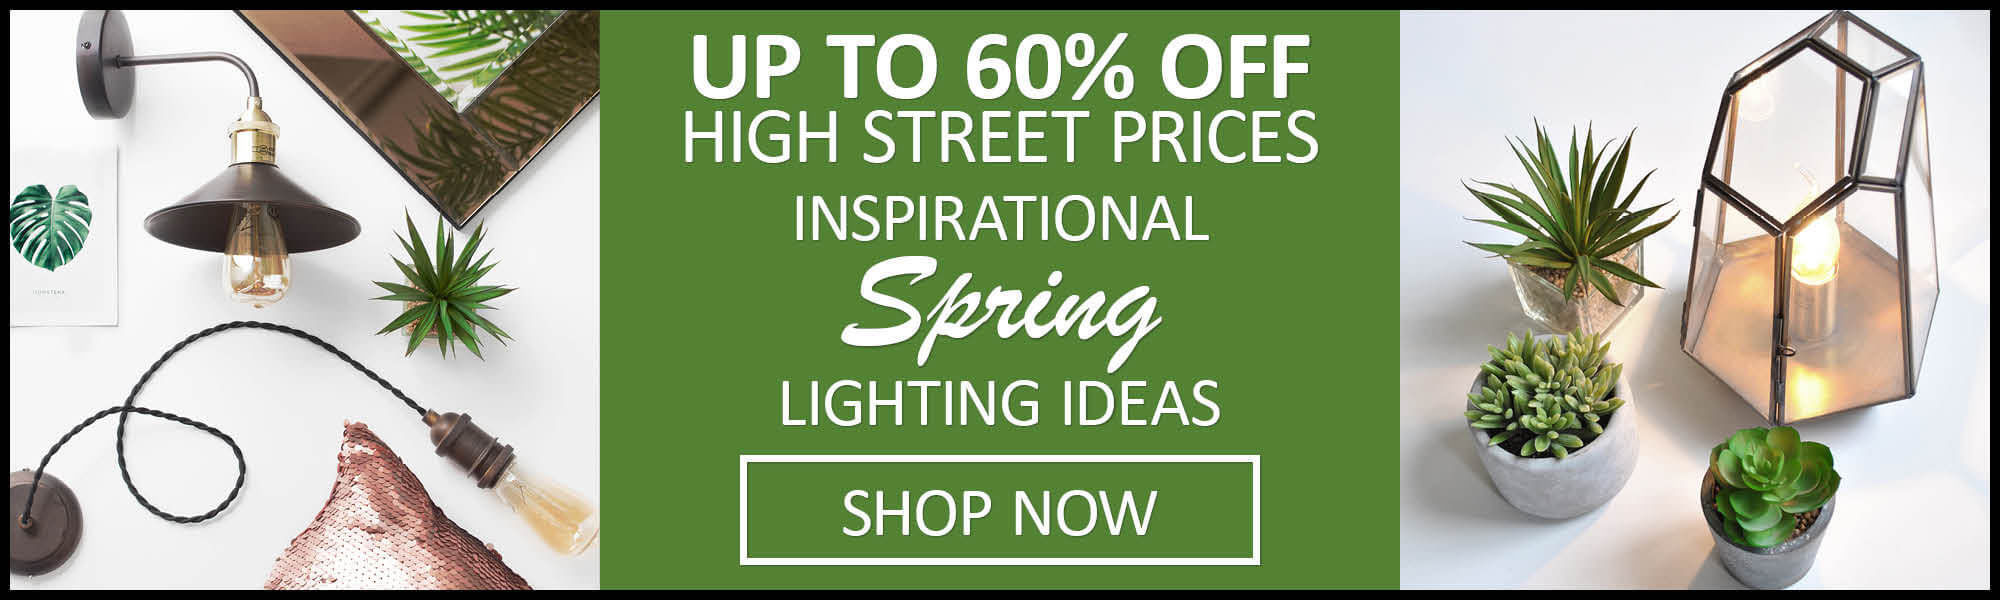 Up to 60% off High Street Prices